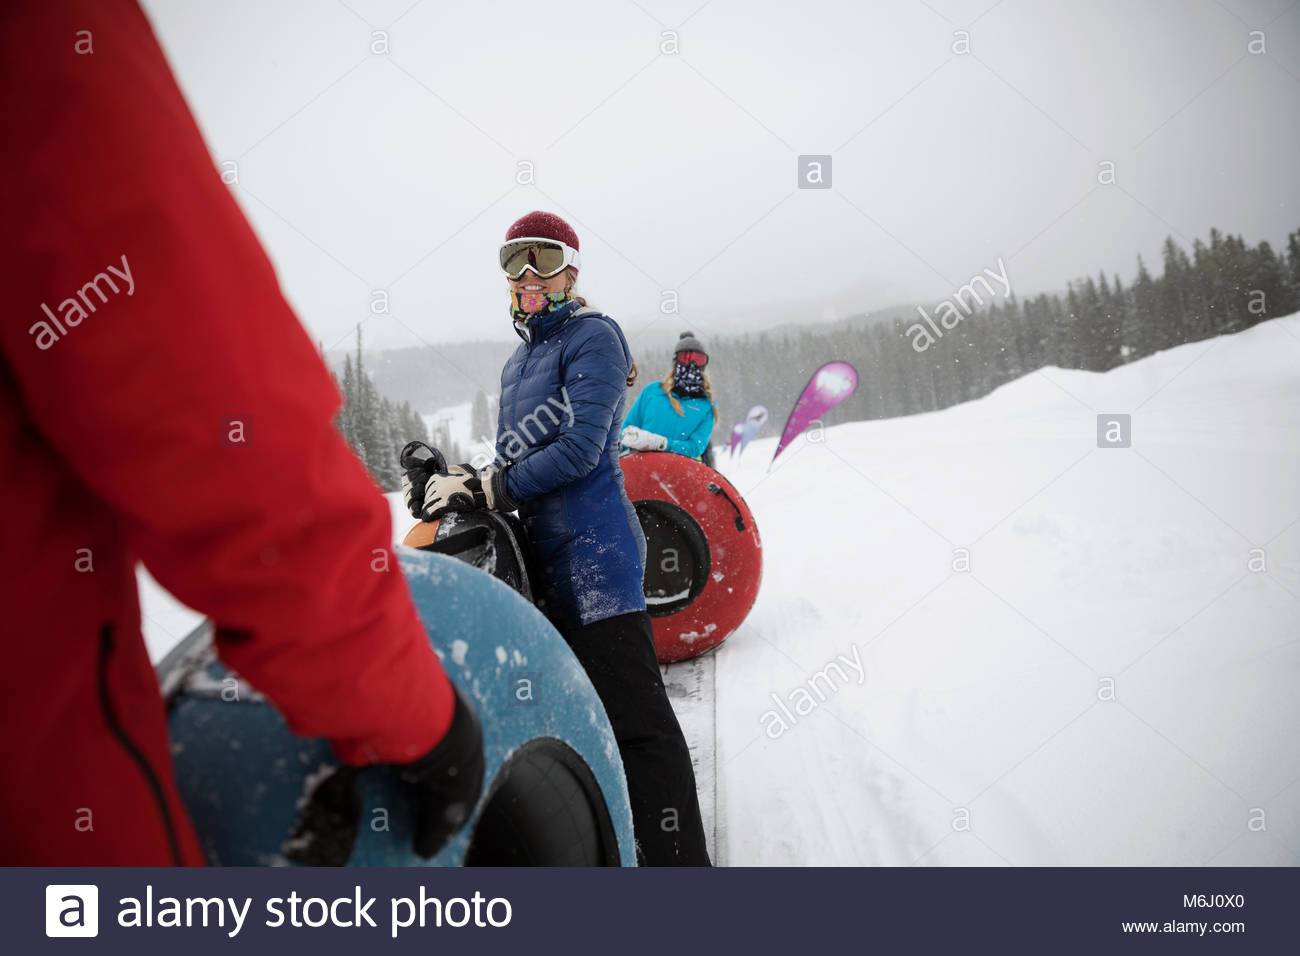 Family inner tubing in snow at tube park - Stock Image